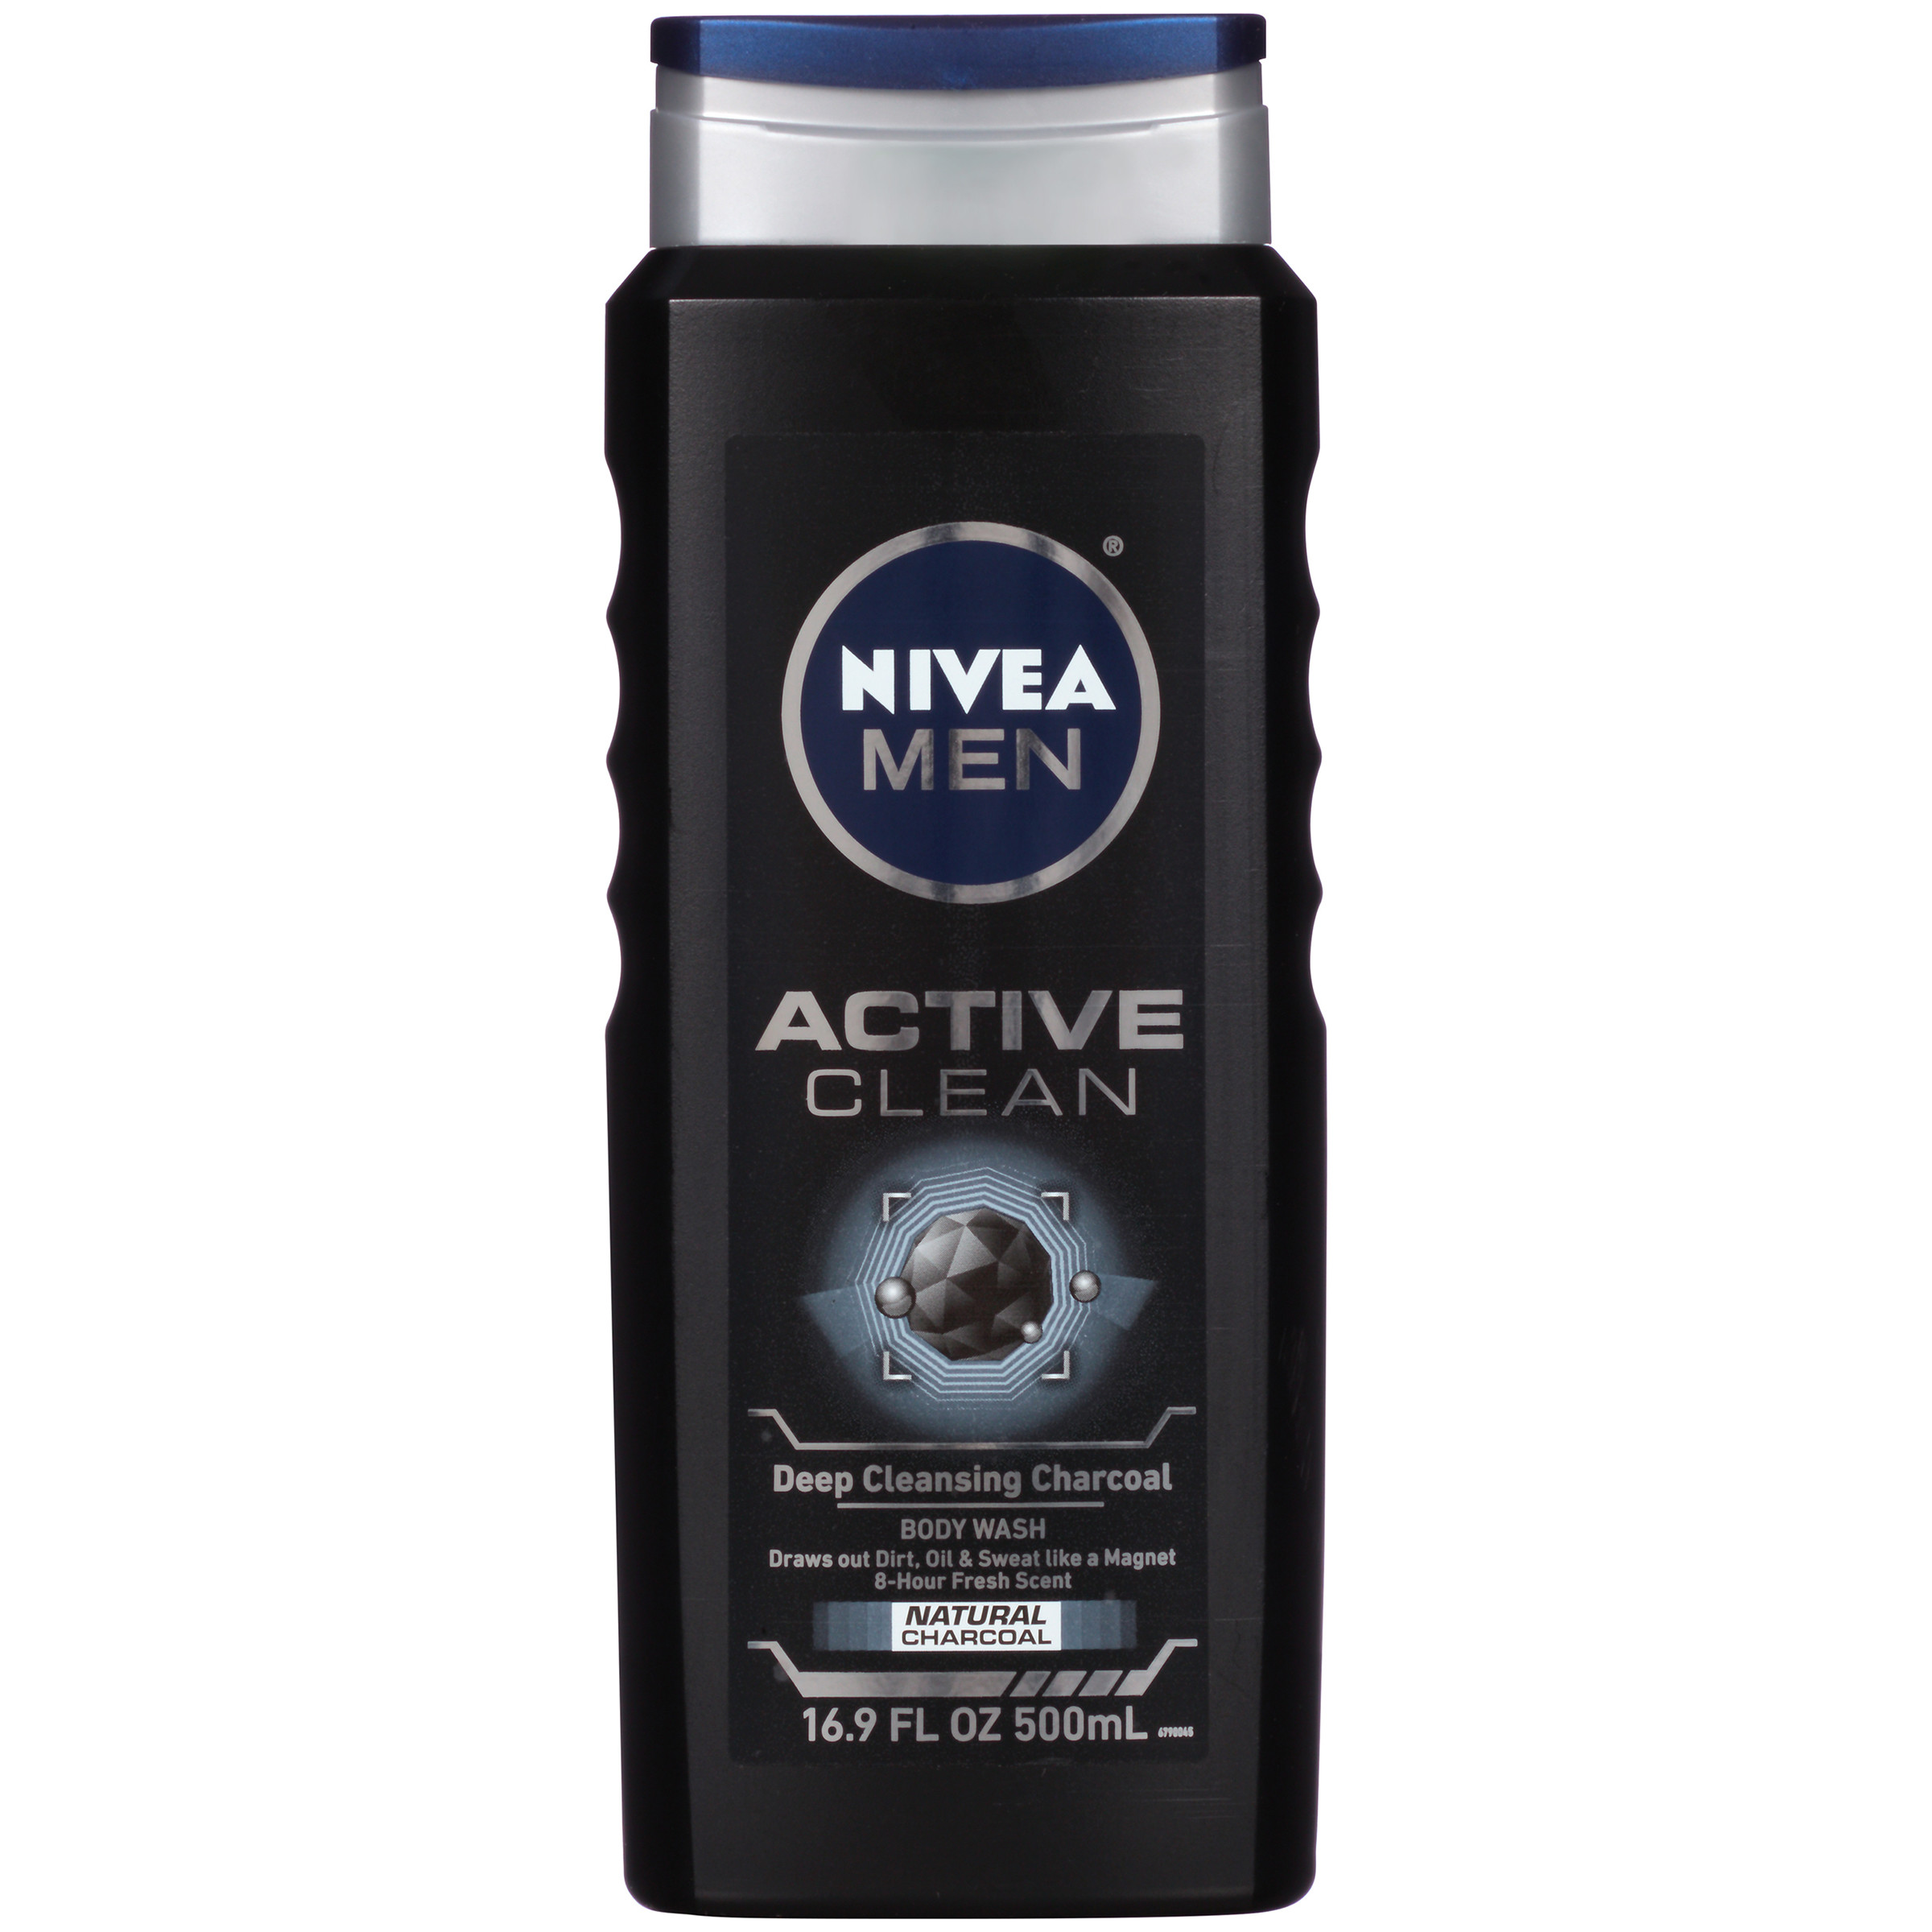 (2 pack) NIVEA Men Active Clean Body Wash 16.9 fl. oz.